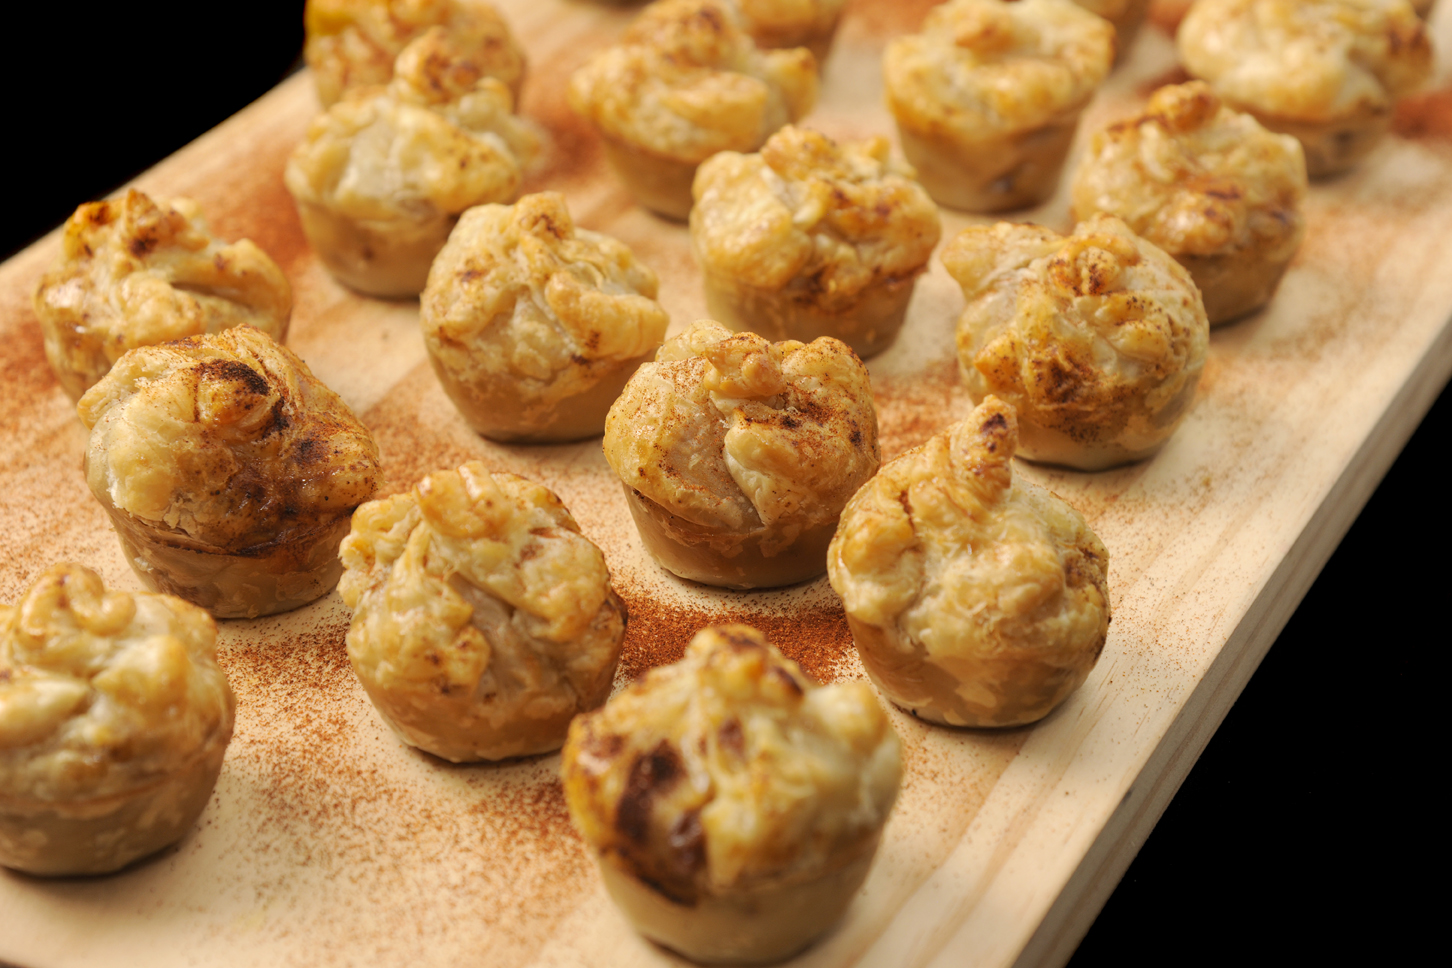 Beef and mushroom pies creative catering perth for Canape delivery